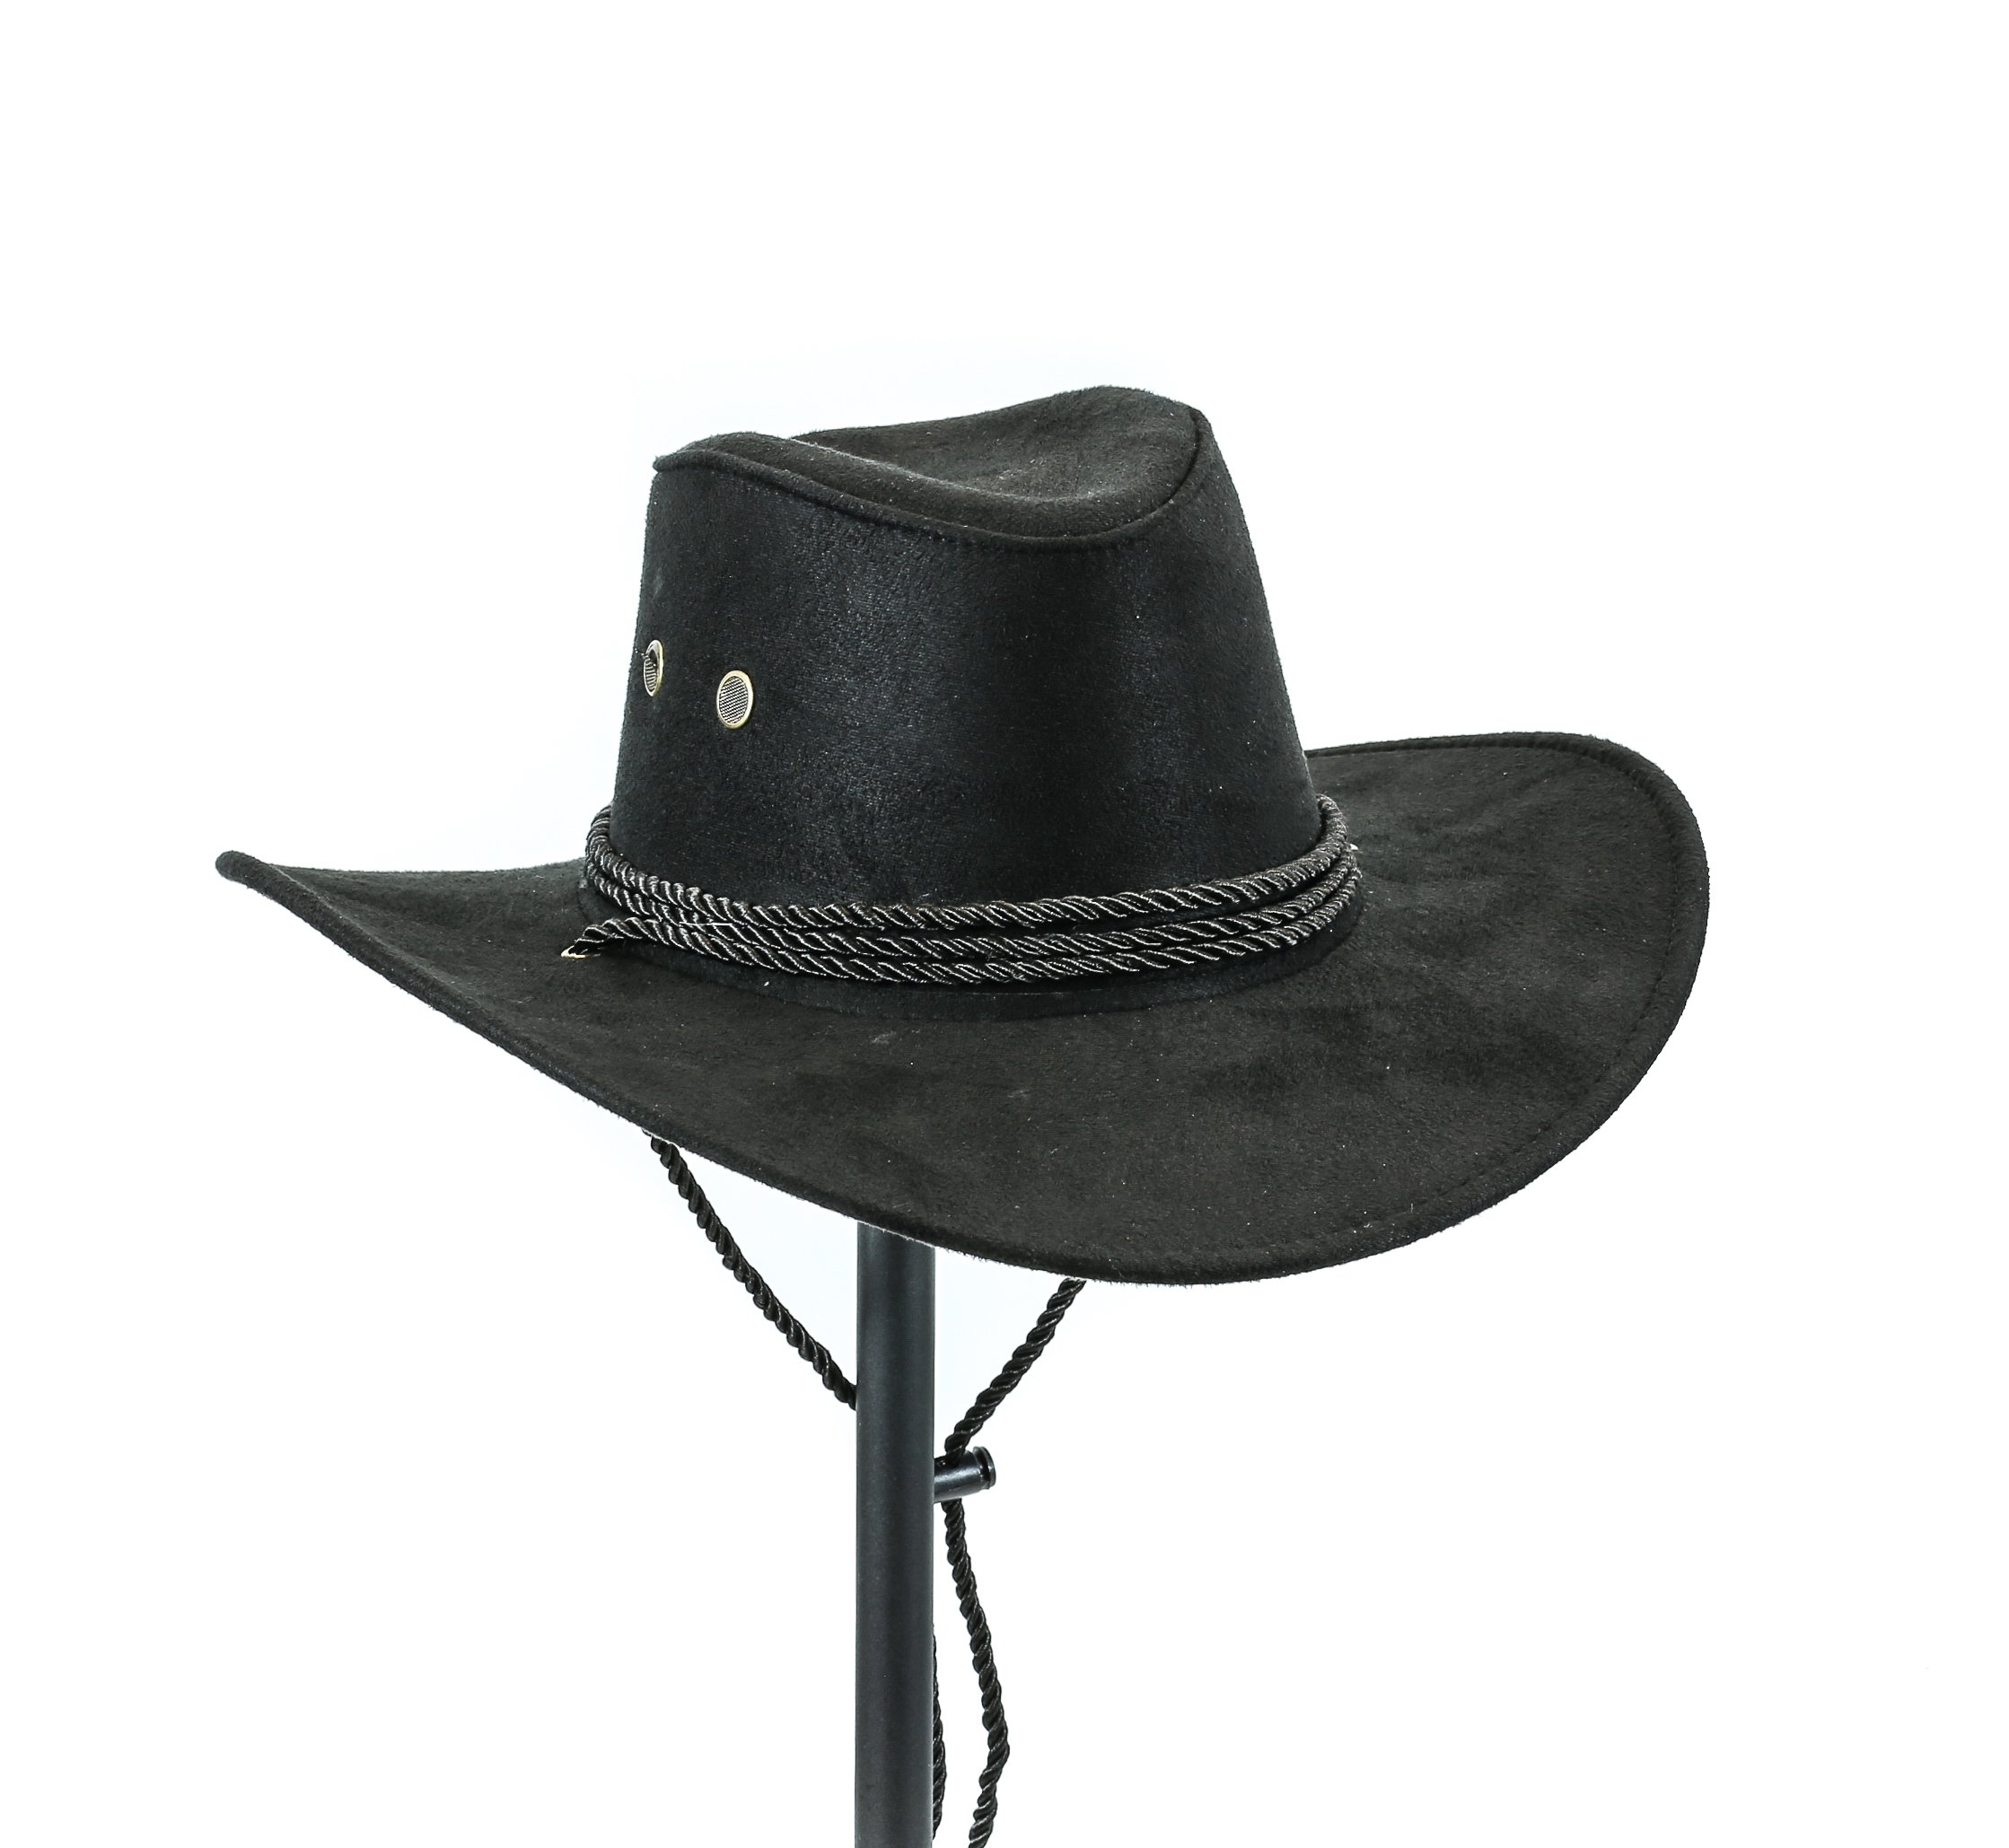 Western Cowboy Hat Conch Rope Band Wide Brim Cowgirl Jazz Cap Wool Blend (Rope Only)